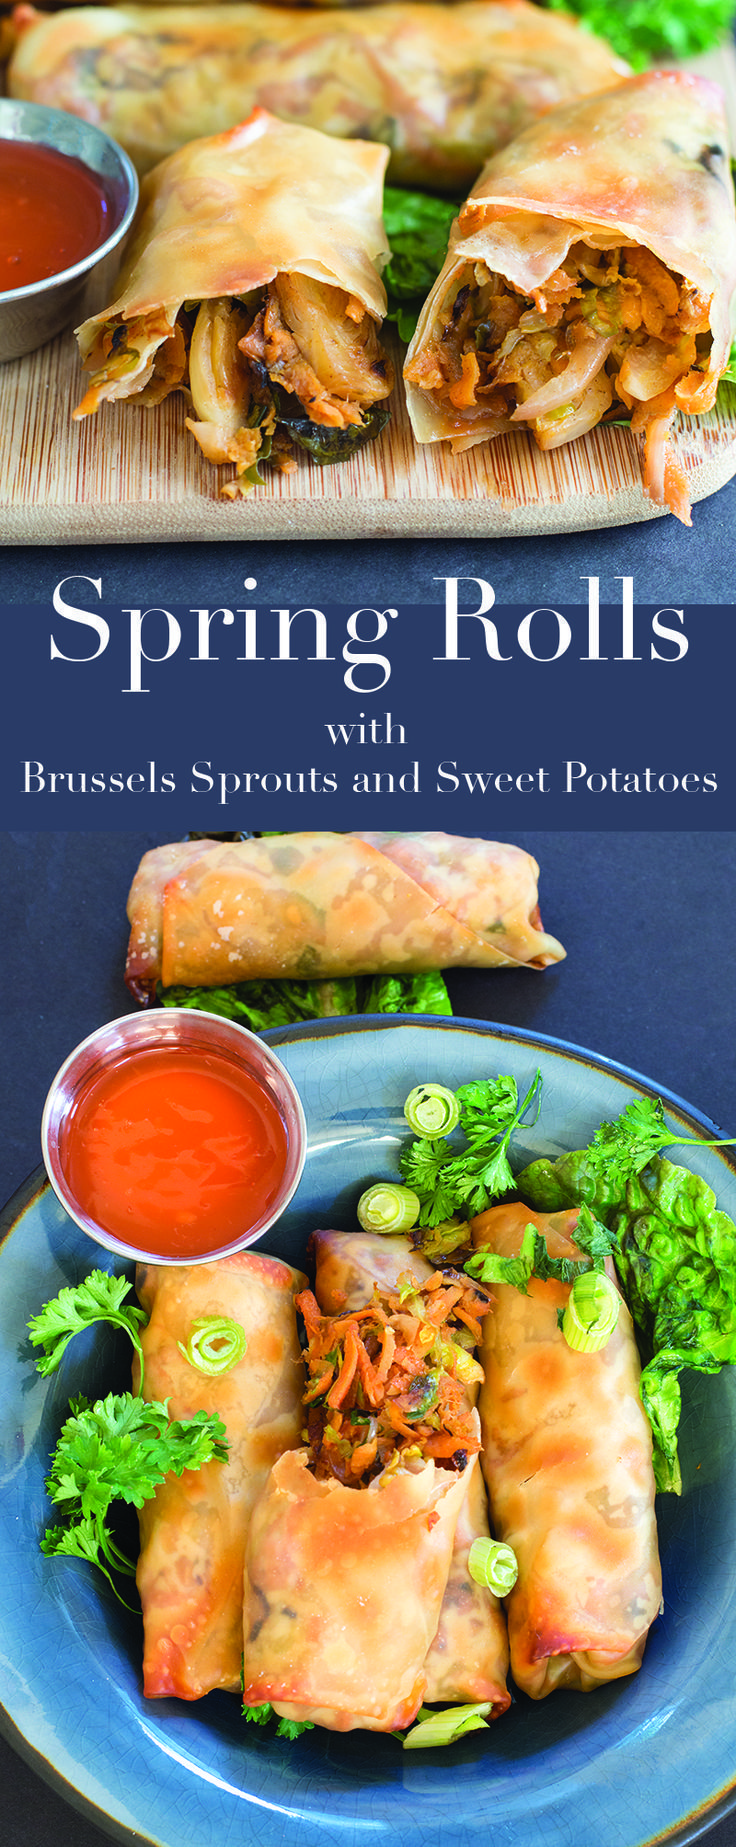 17 Best ideas about Brussel Sprout Plant on Pinterest ...